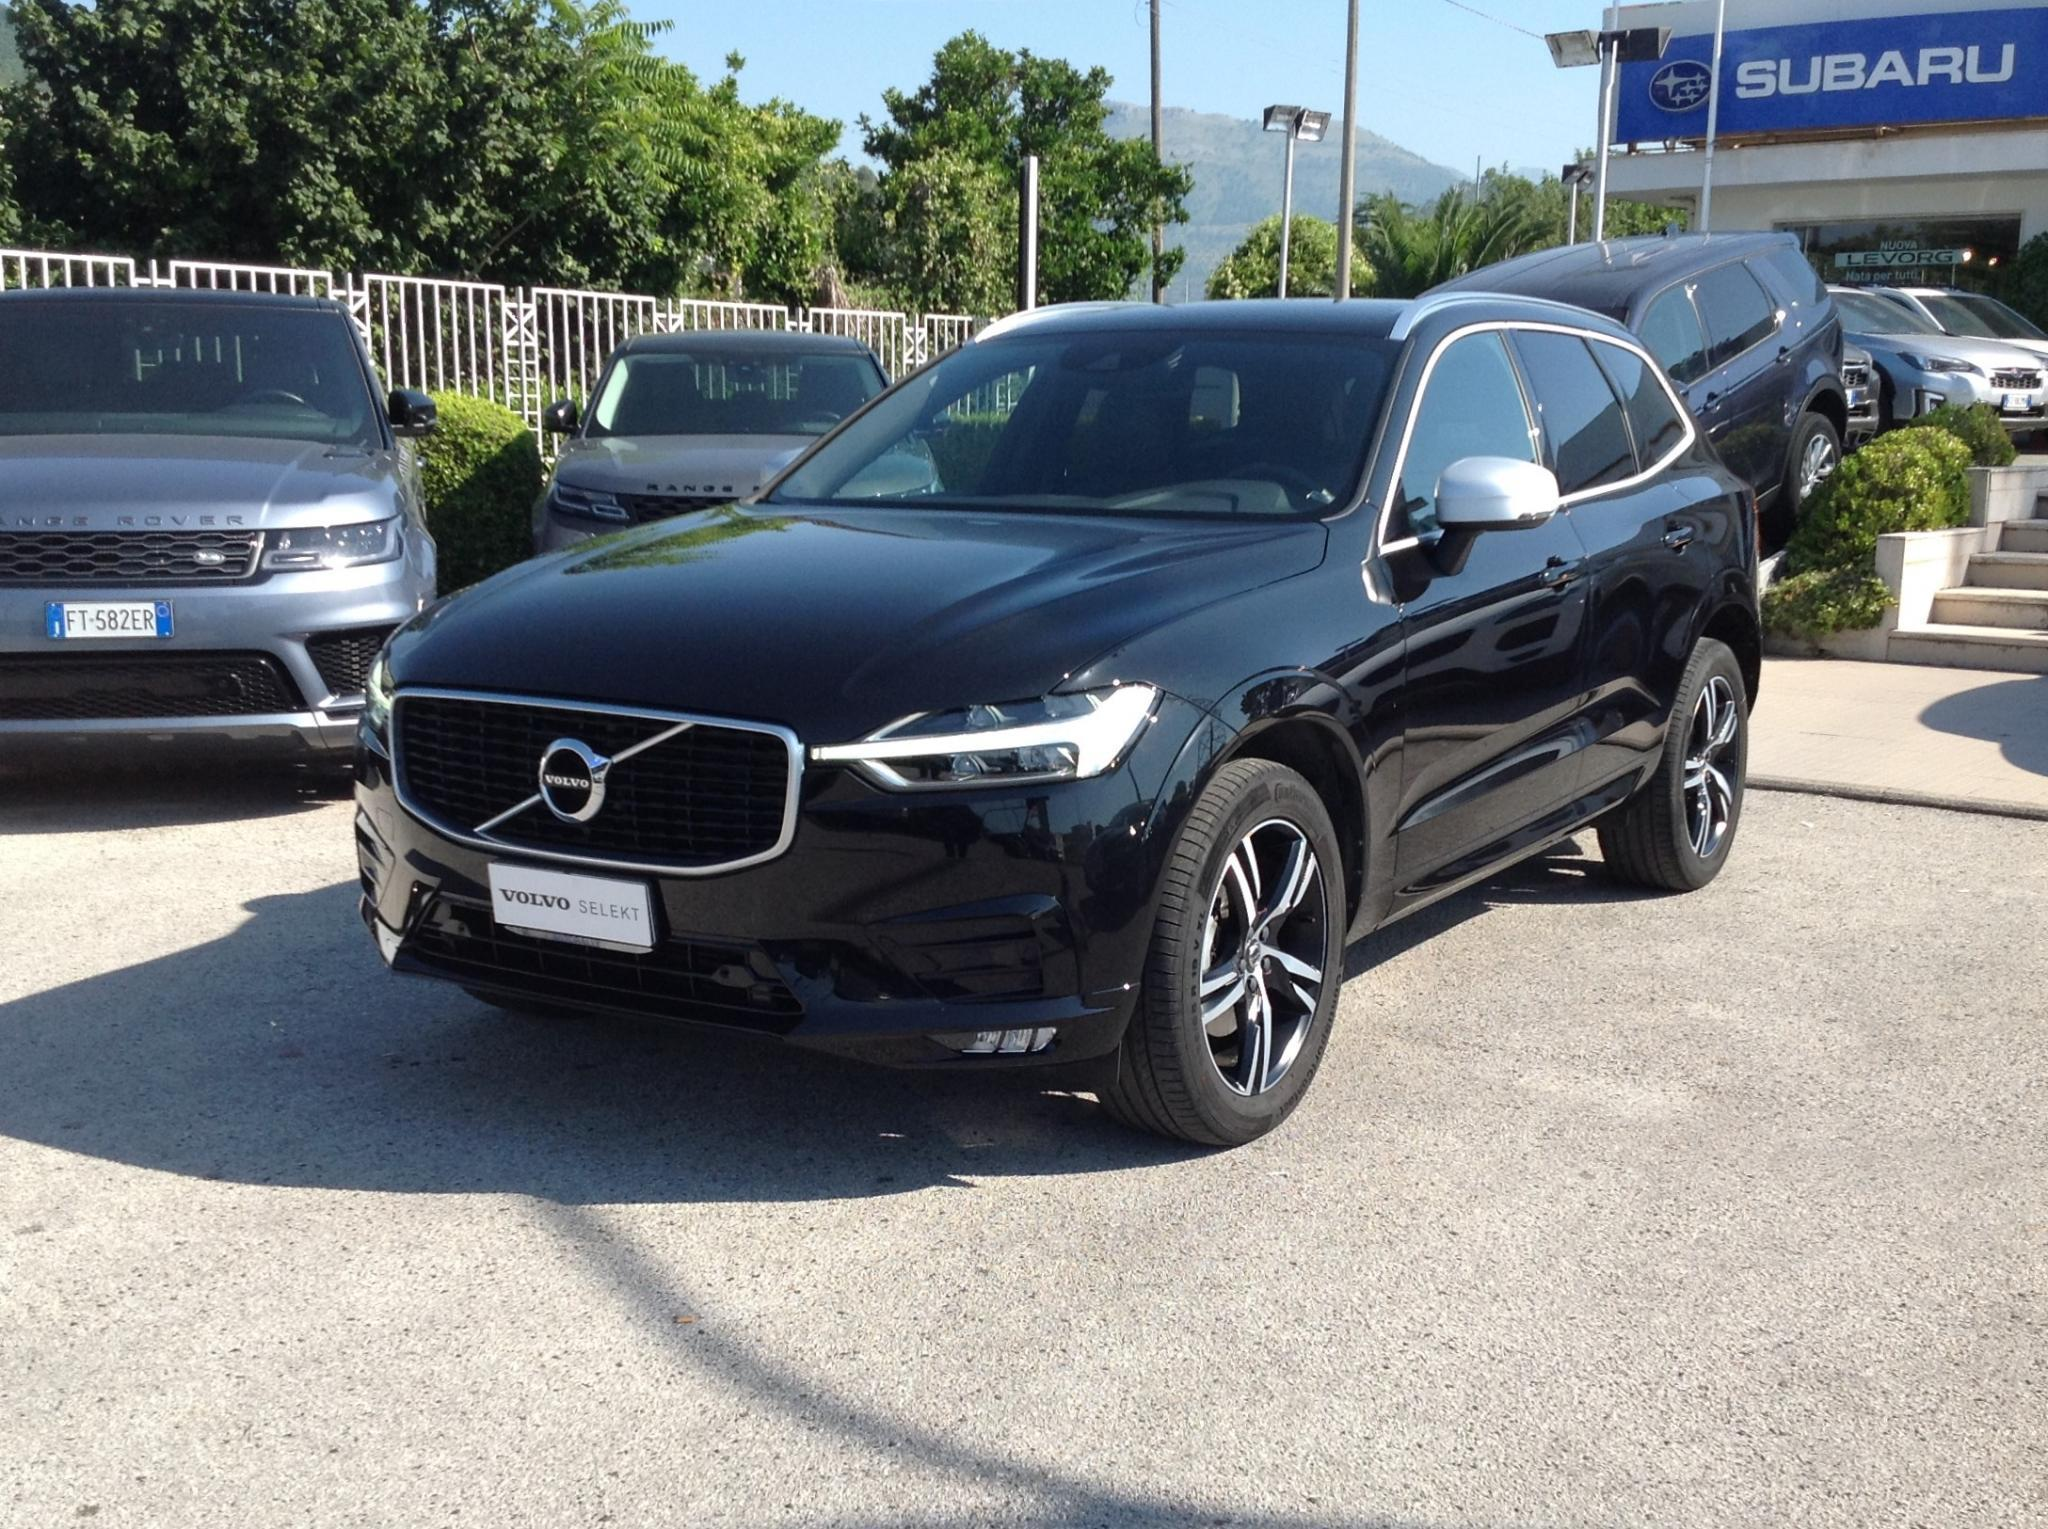 Volvo XC 60 D4 AWD Geartronic R-design